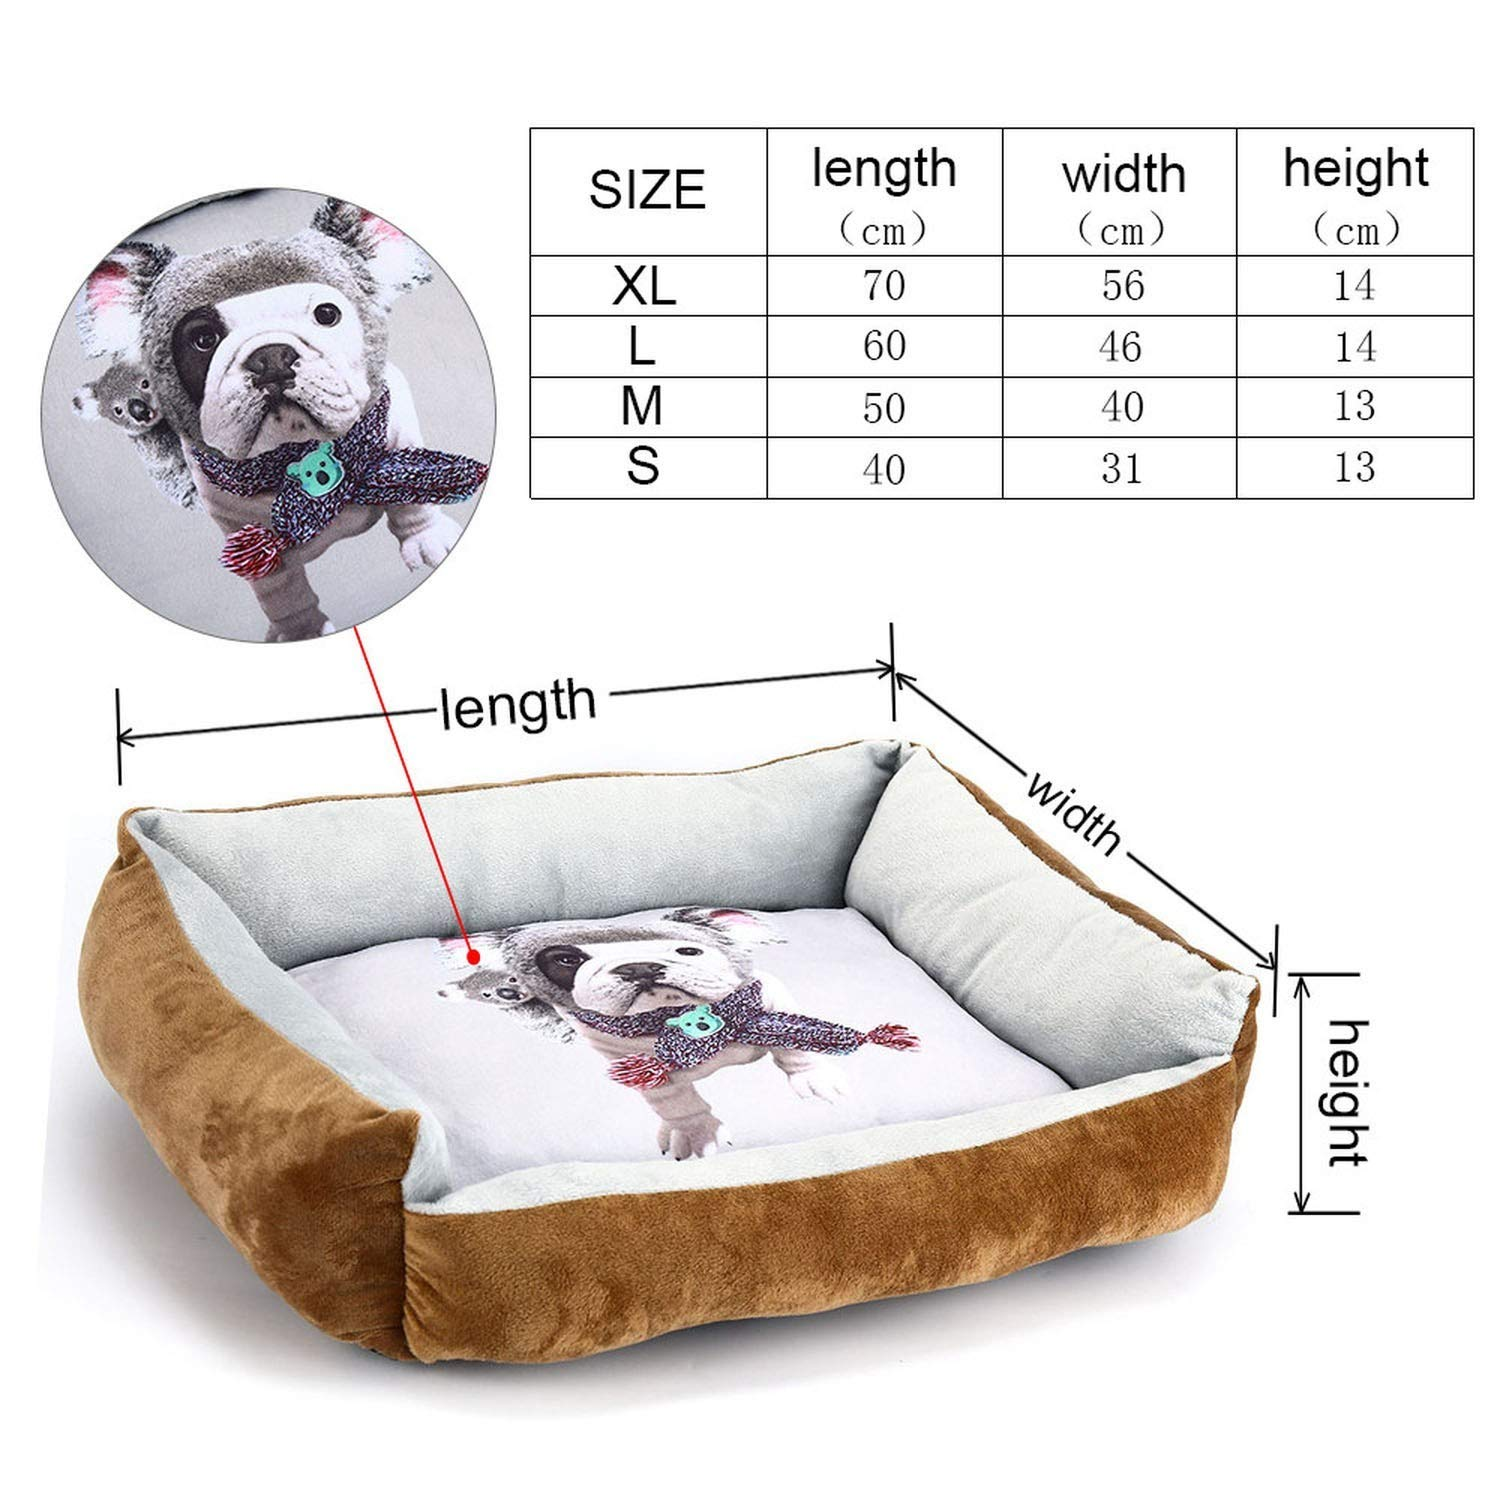 Brown M As PictureBeds for Dogs Bed Cats Cotton Breathable Dog Sofas House for Cats Dog Bed Hand Wash Bench for Small Large Dogs Bed Pets XR0002,Pink,XL